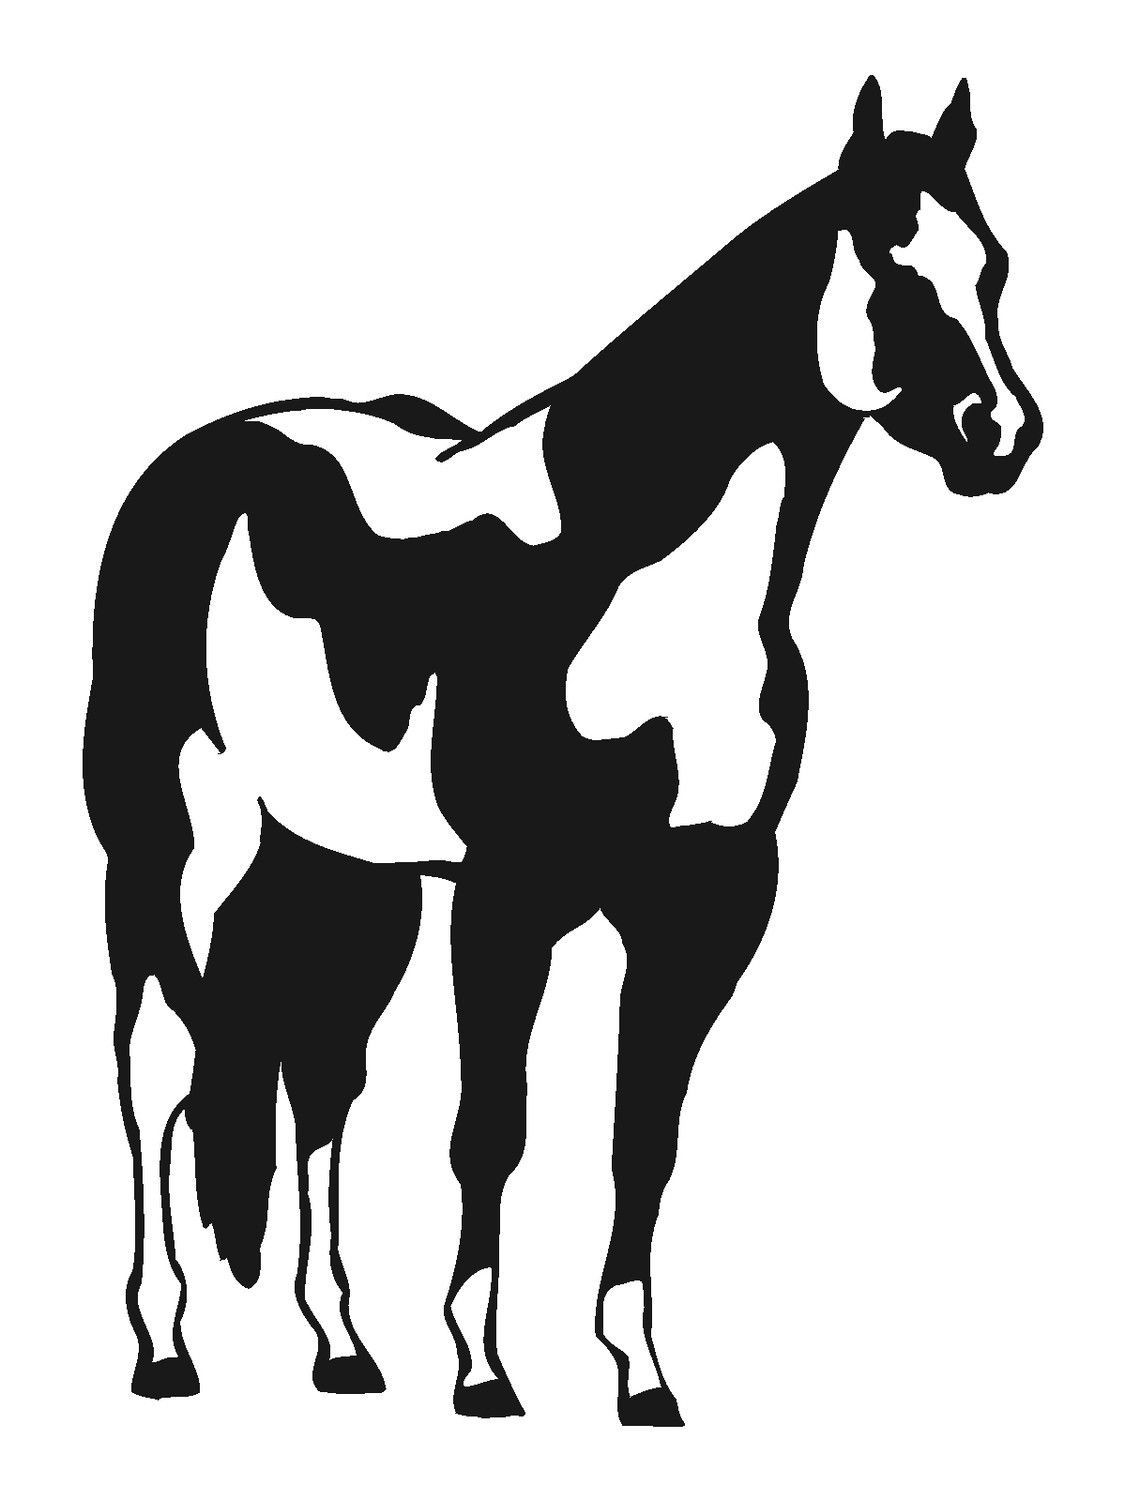 1125x1500 Horse decal Horse wall decal Horse sticker Paint horse decal Paint  sc 1 st  GetDrawings.com : horse silhouette wall art - www.pureclipart.com